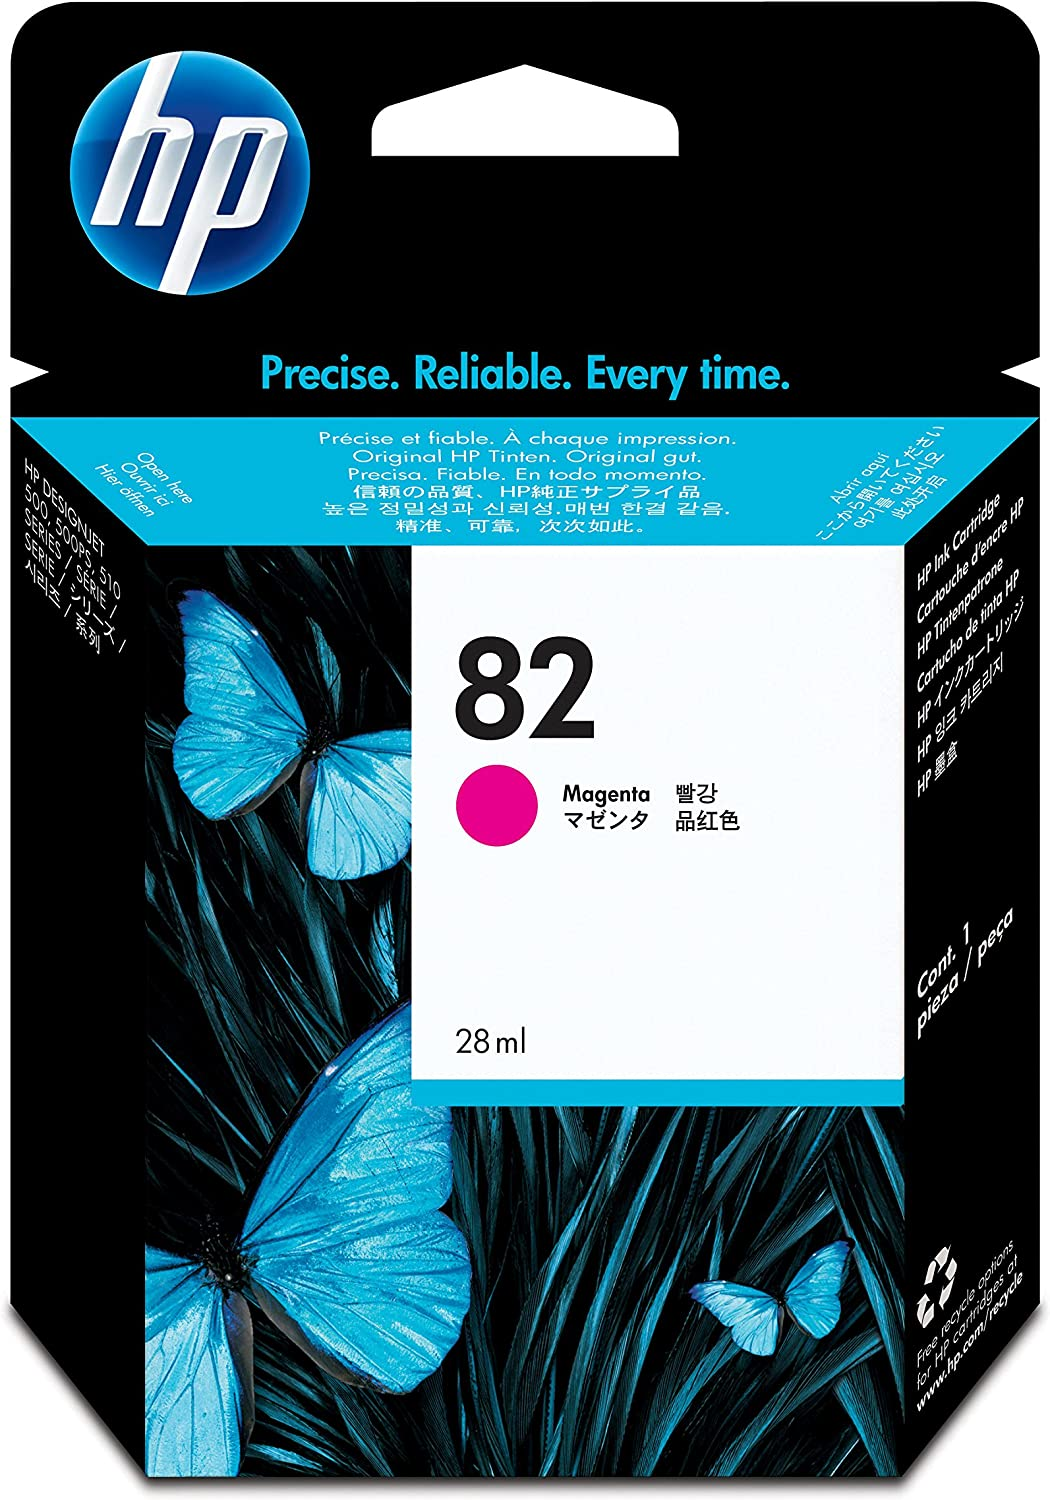 HP CH567A - Cartucho de tinta numéro 82 para HP DesignJet 10 PS/500/510, 28 ml, color magenta: Hp: Amazon.es: Oficina y papelería